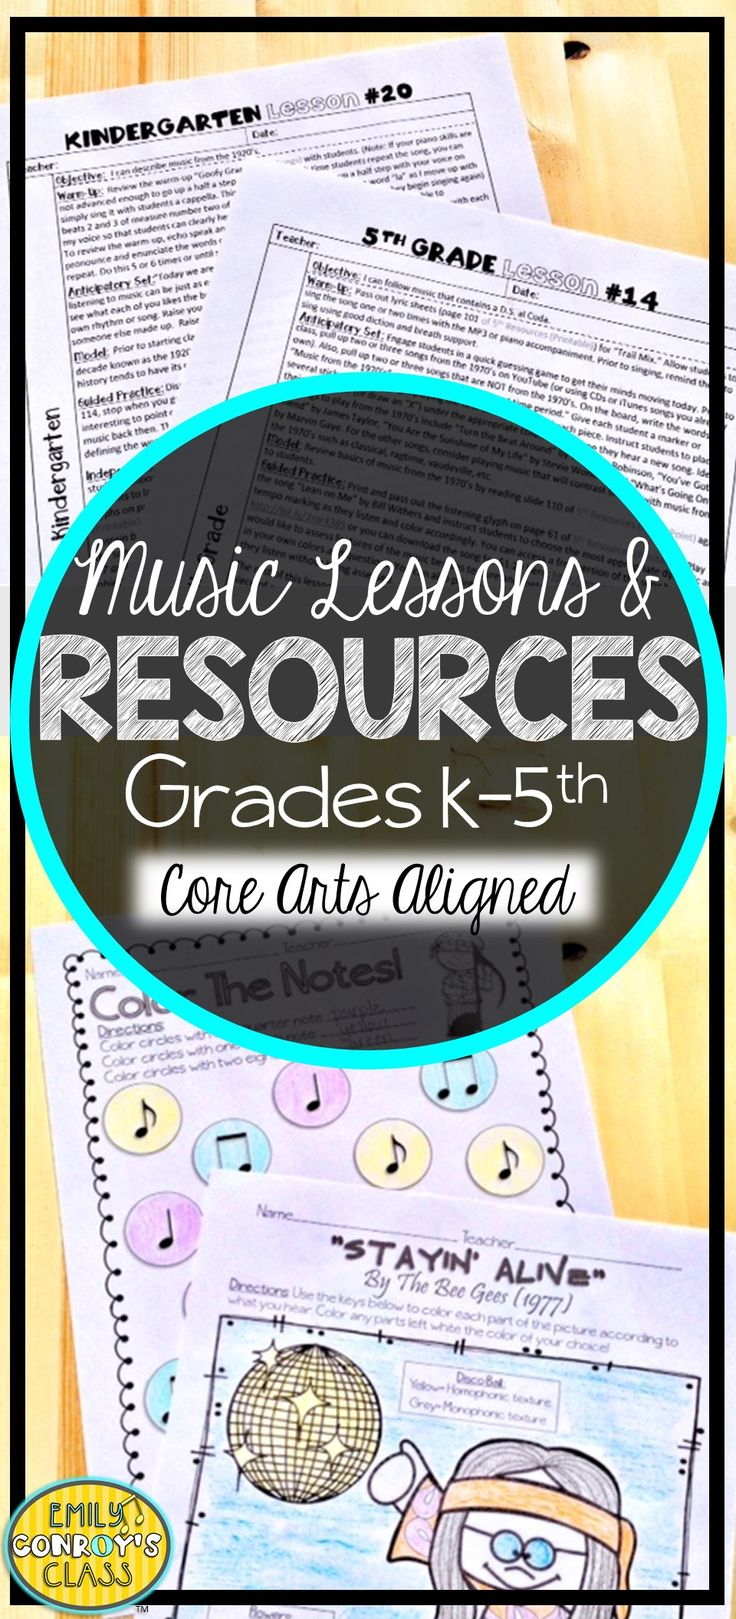 These elementary music lesson plans are aligned to the National Core Arts Standards! They are creative and concise and contain lesson plans and resources for grades K-5. They also include notation and sound files for all of the songs mentioned in the lessons!